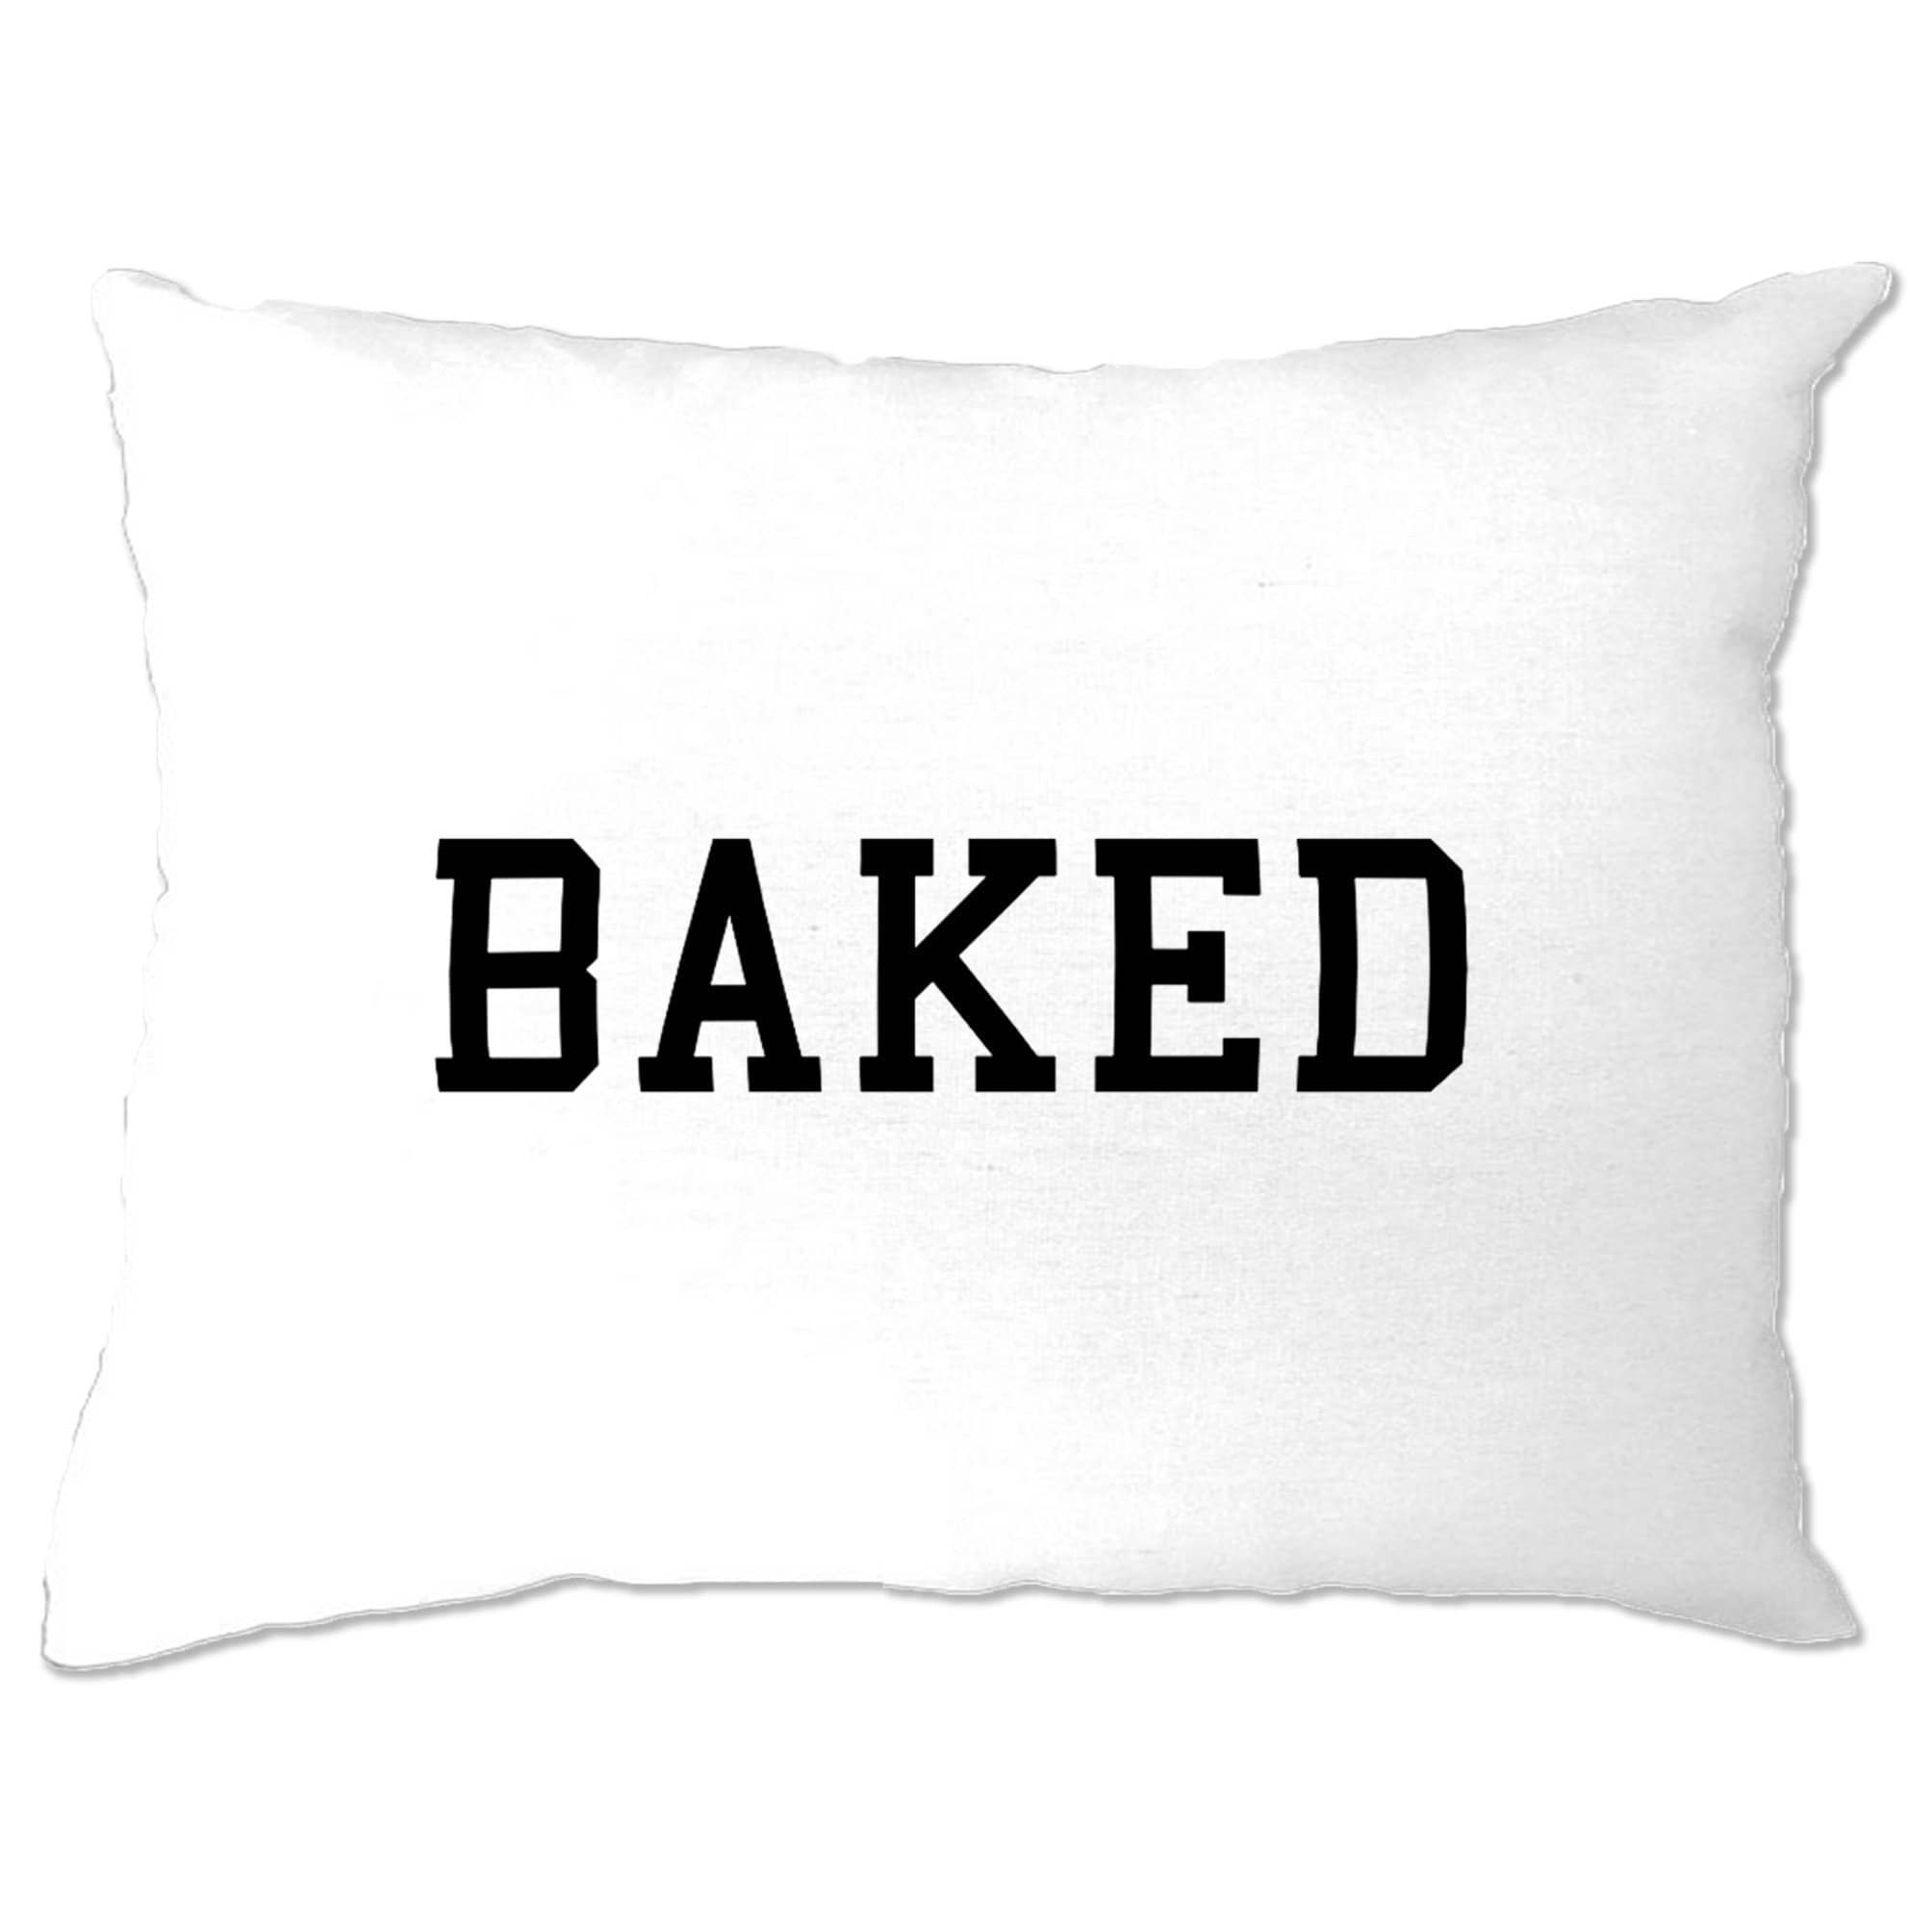 BAKED Pillow Case College Style Printed Slogan